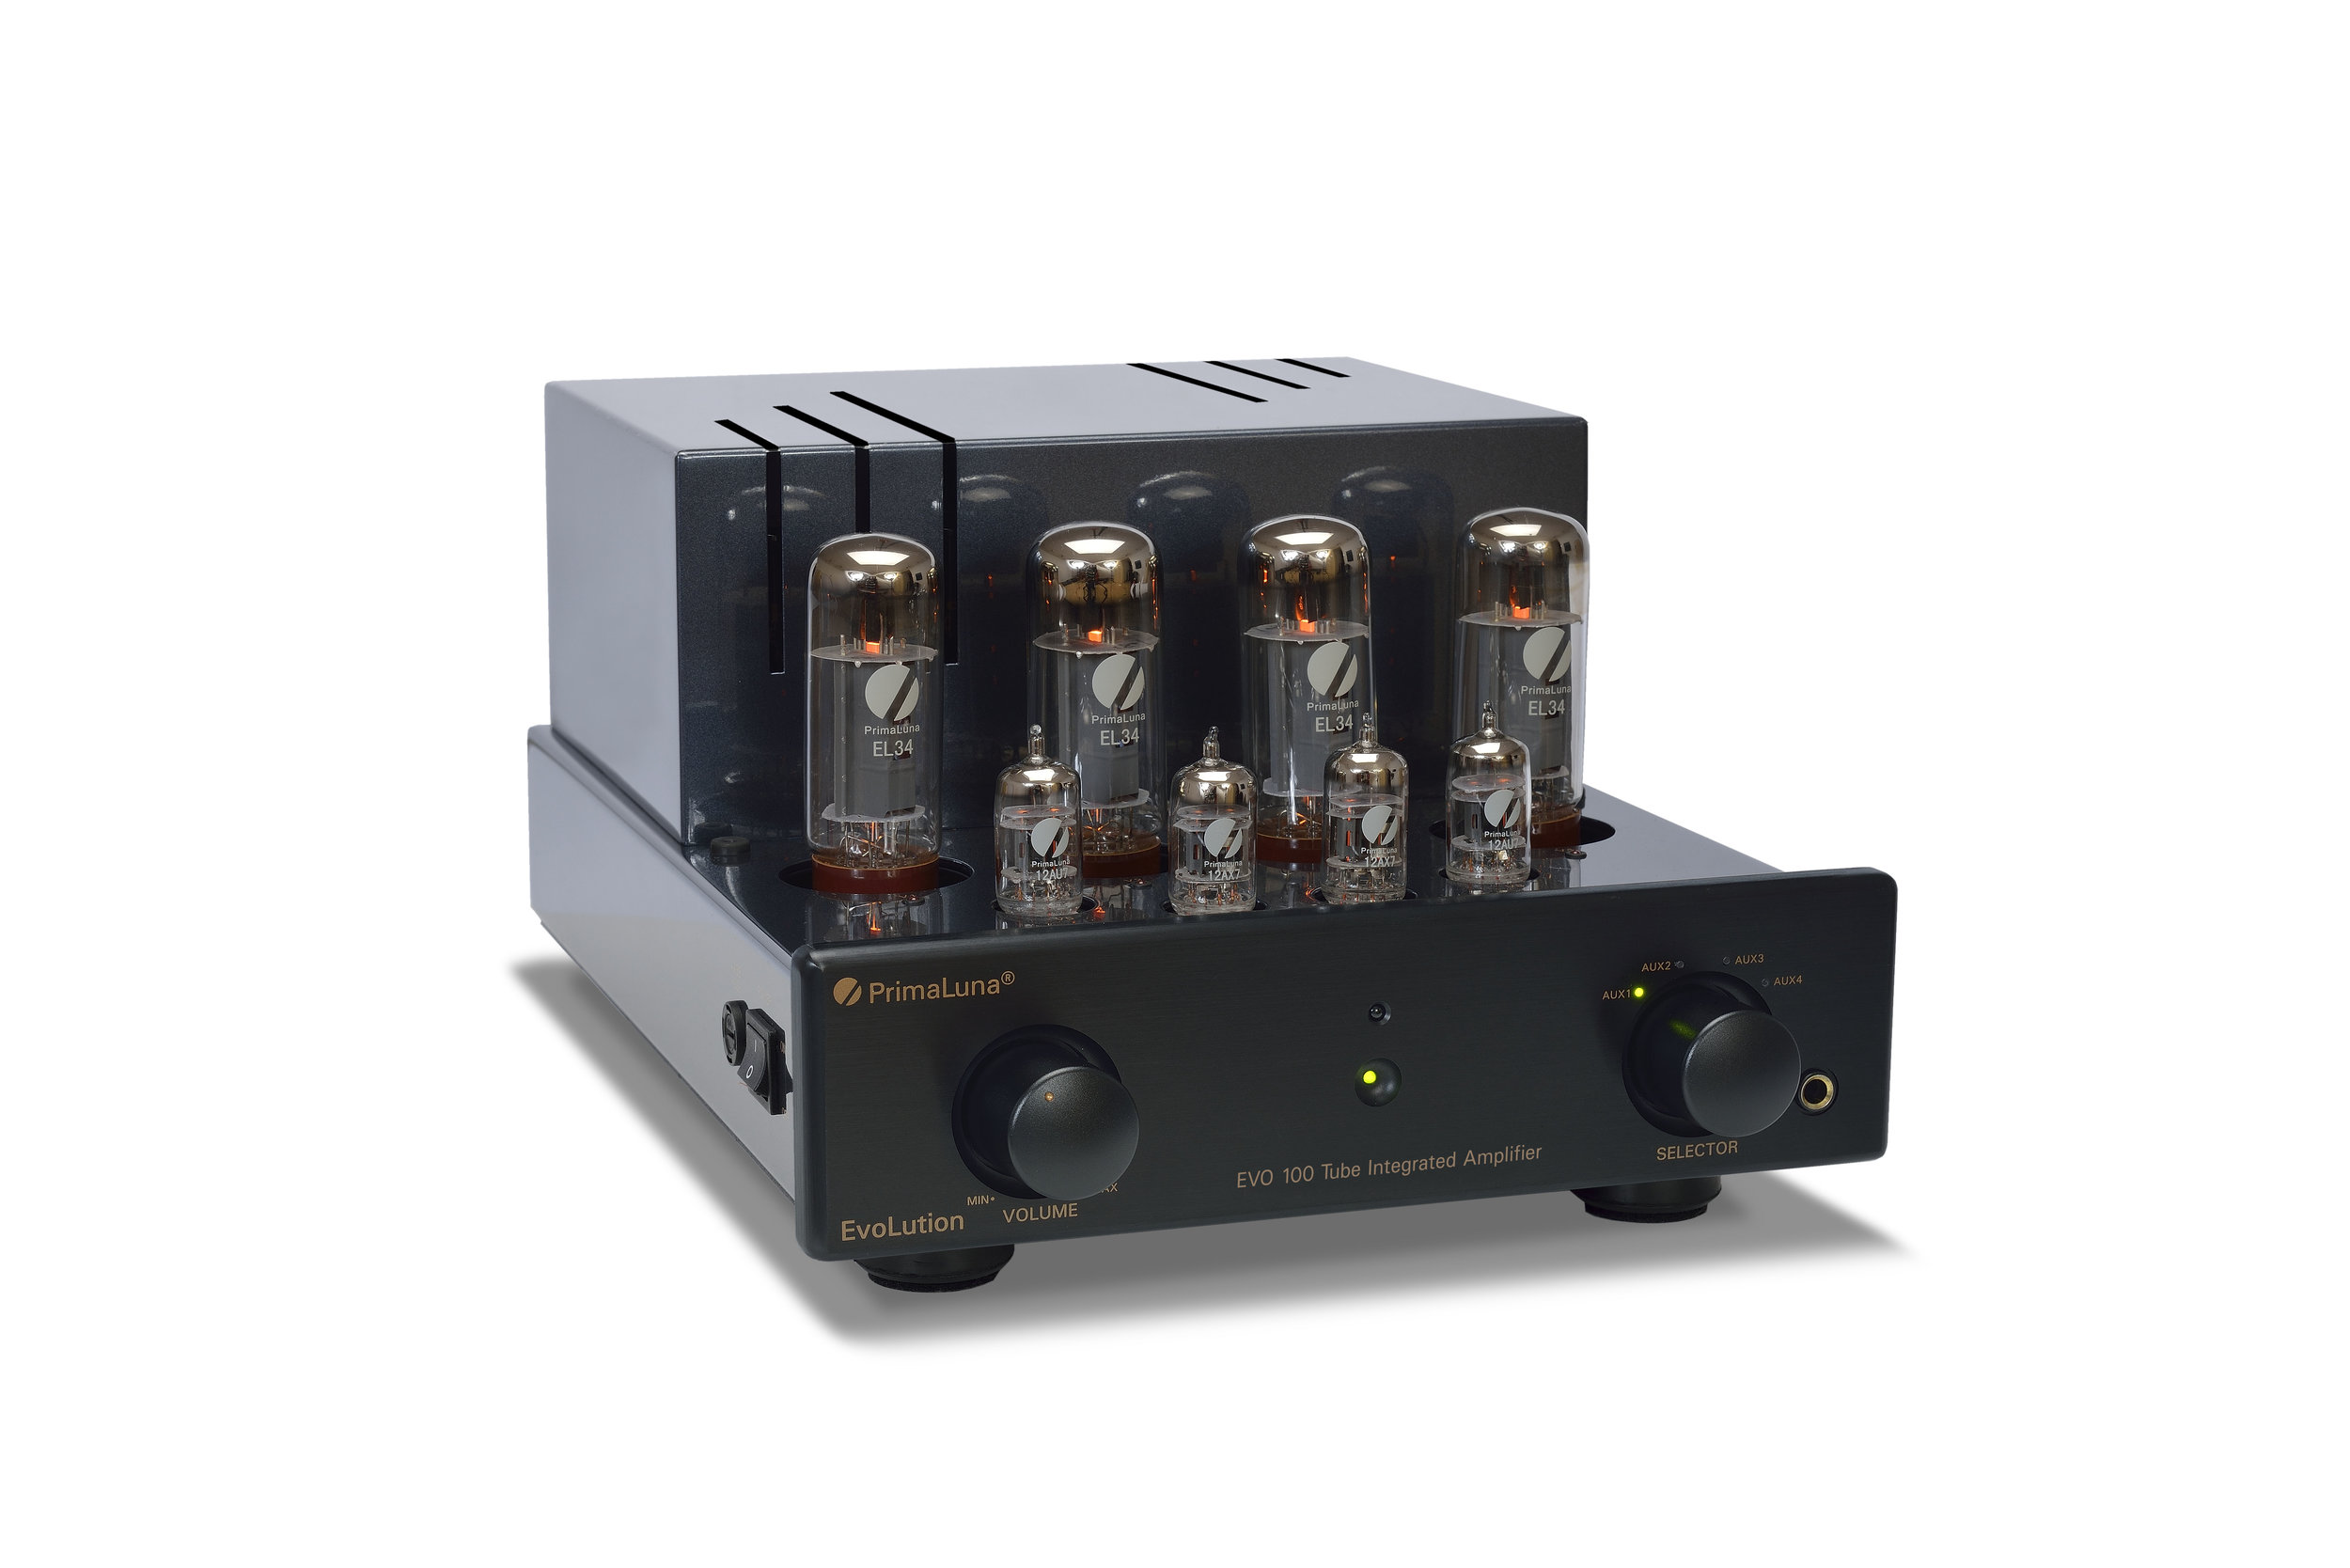 163b - PrimaLuna EVO 100 Tube Integrated Amplifier - black - slanted - without cage - white background.jpg